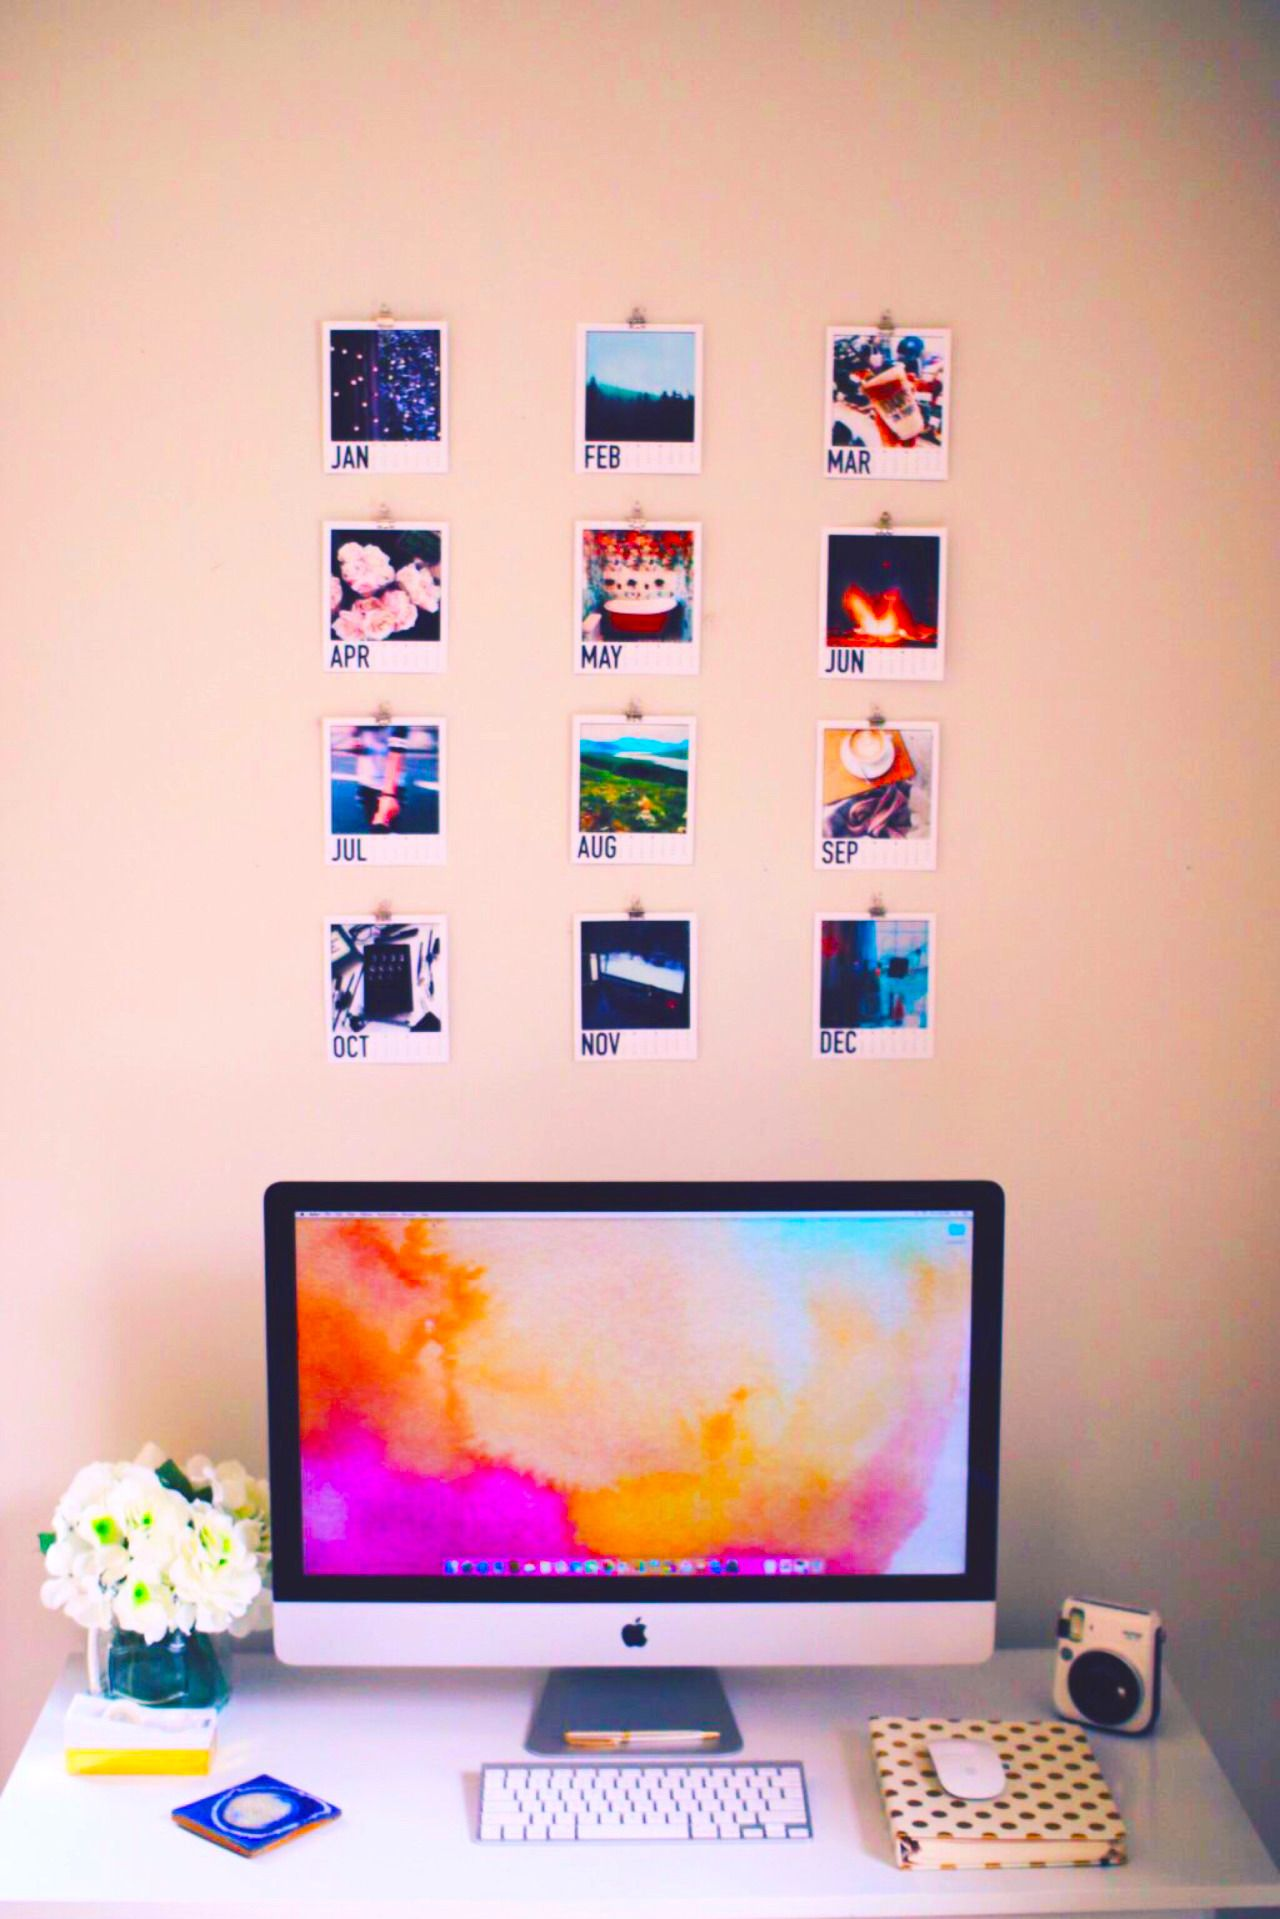 Diy calendar room decorations click on picture for youtube diy calendar room decorations click on picture for youtube tutorial diy calendar polaroids solutioingenieria Gallery